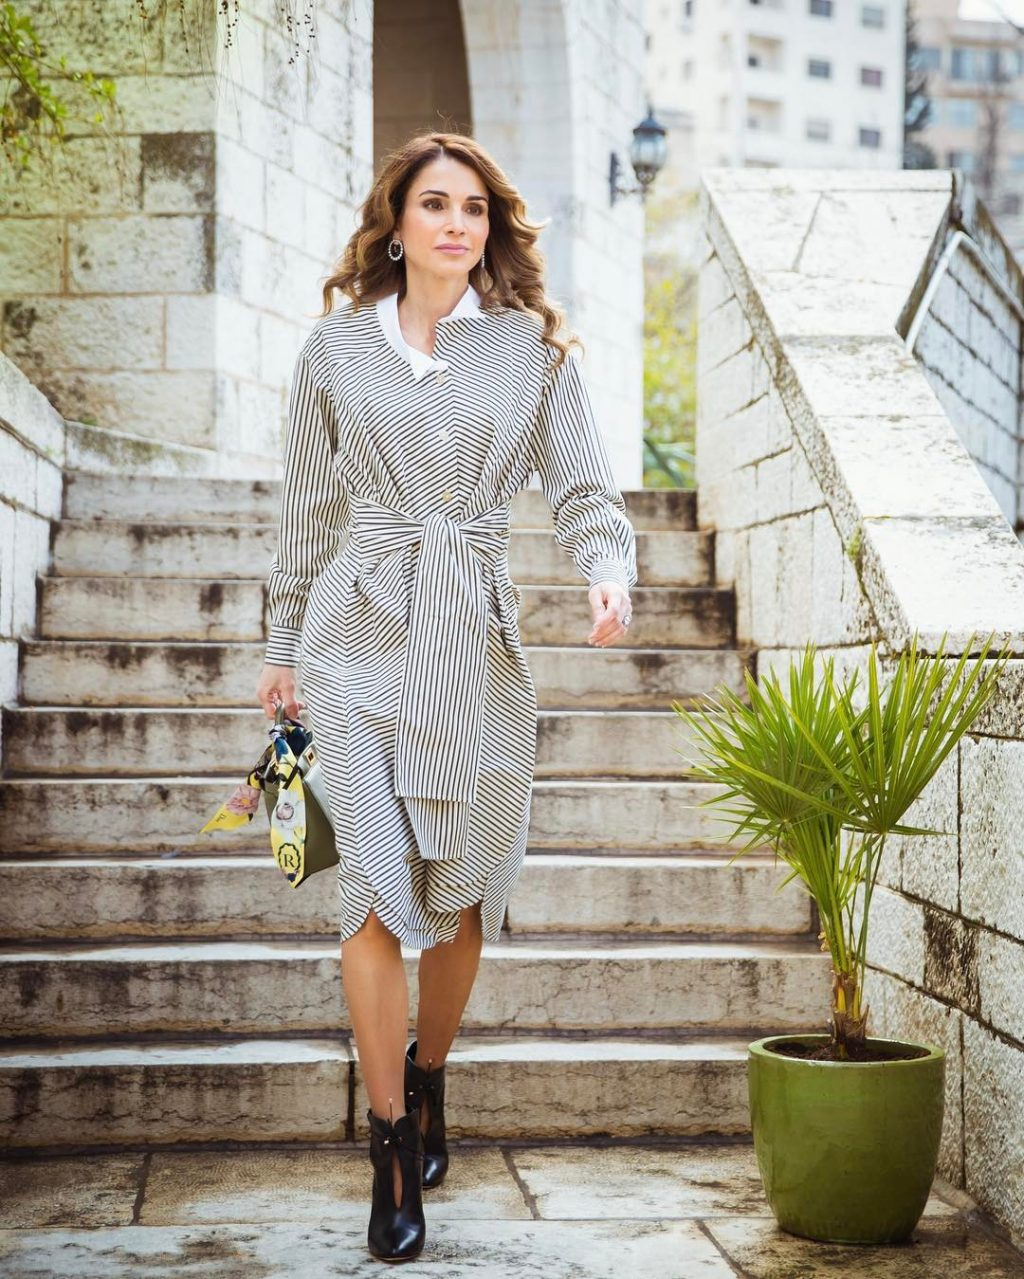 If You Love Queen Rania's Style, Then You'll Love This Instagram Account